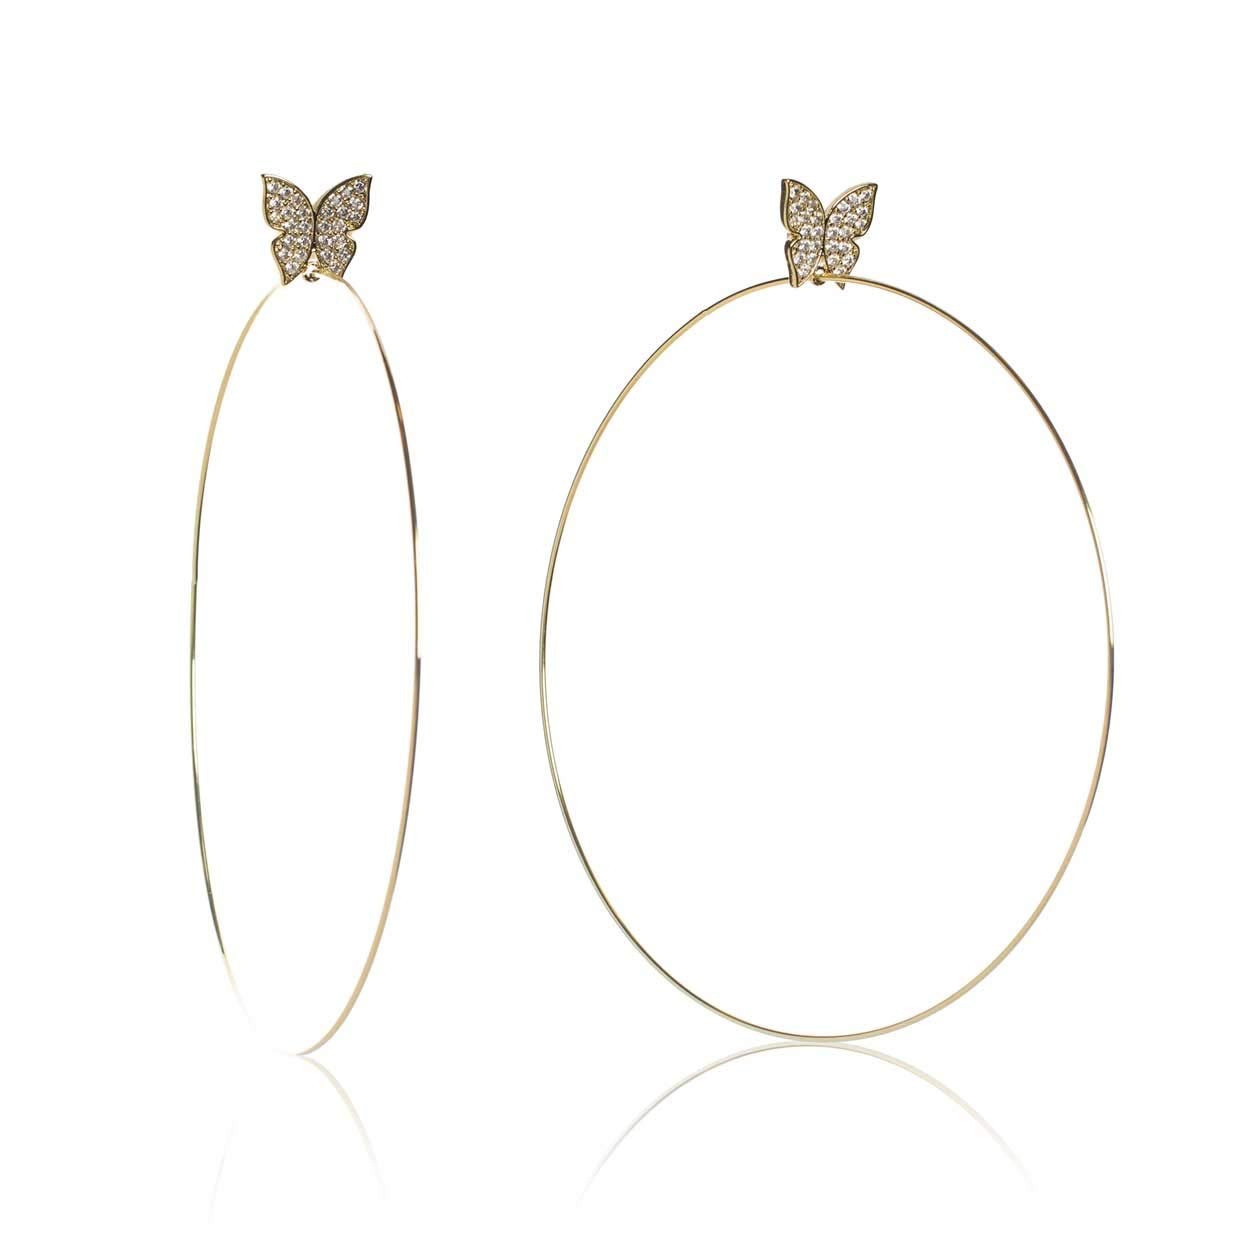 Evelyn Signature 4'' Gold Plated Hoop Earrings